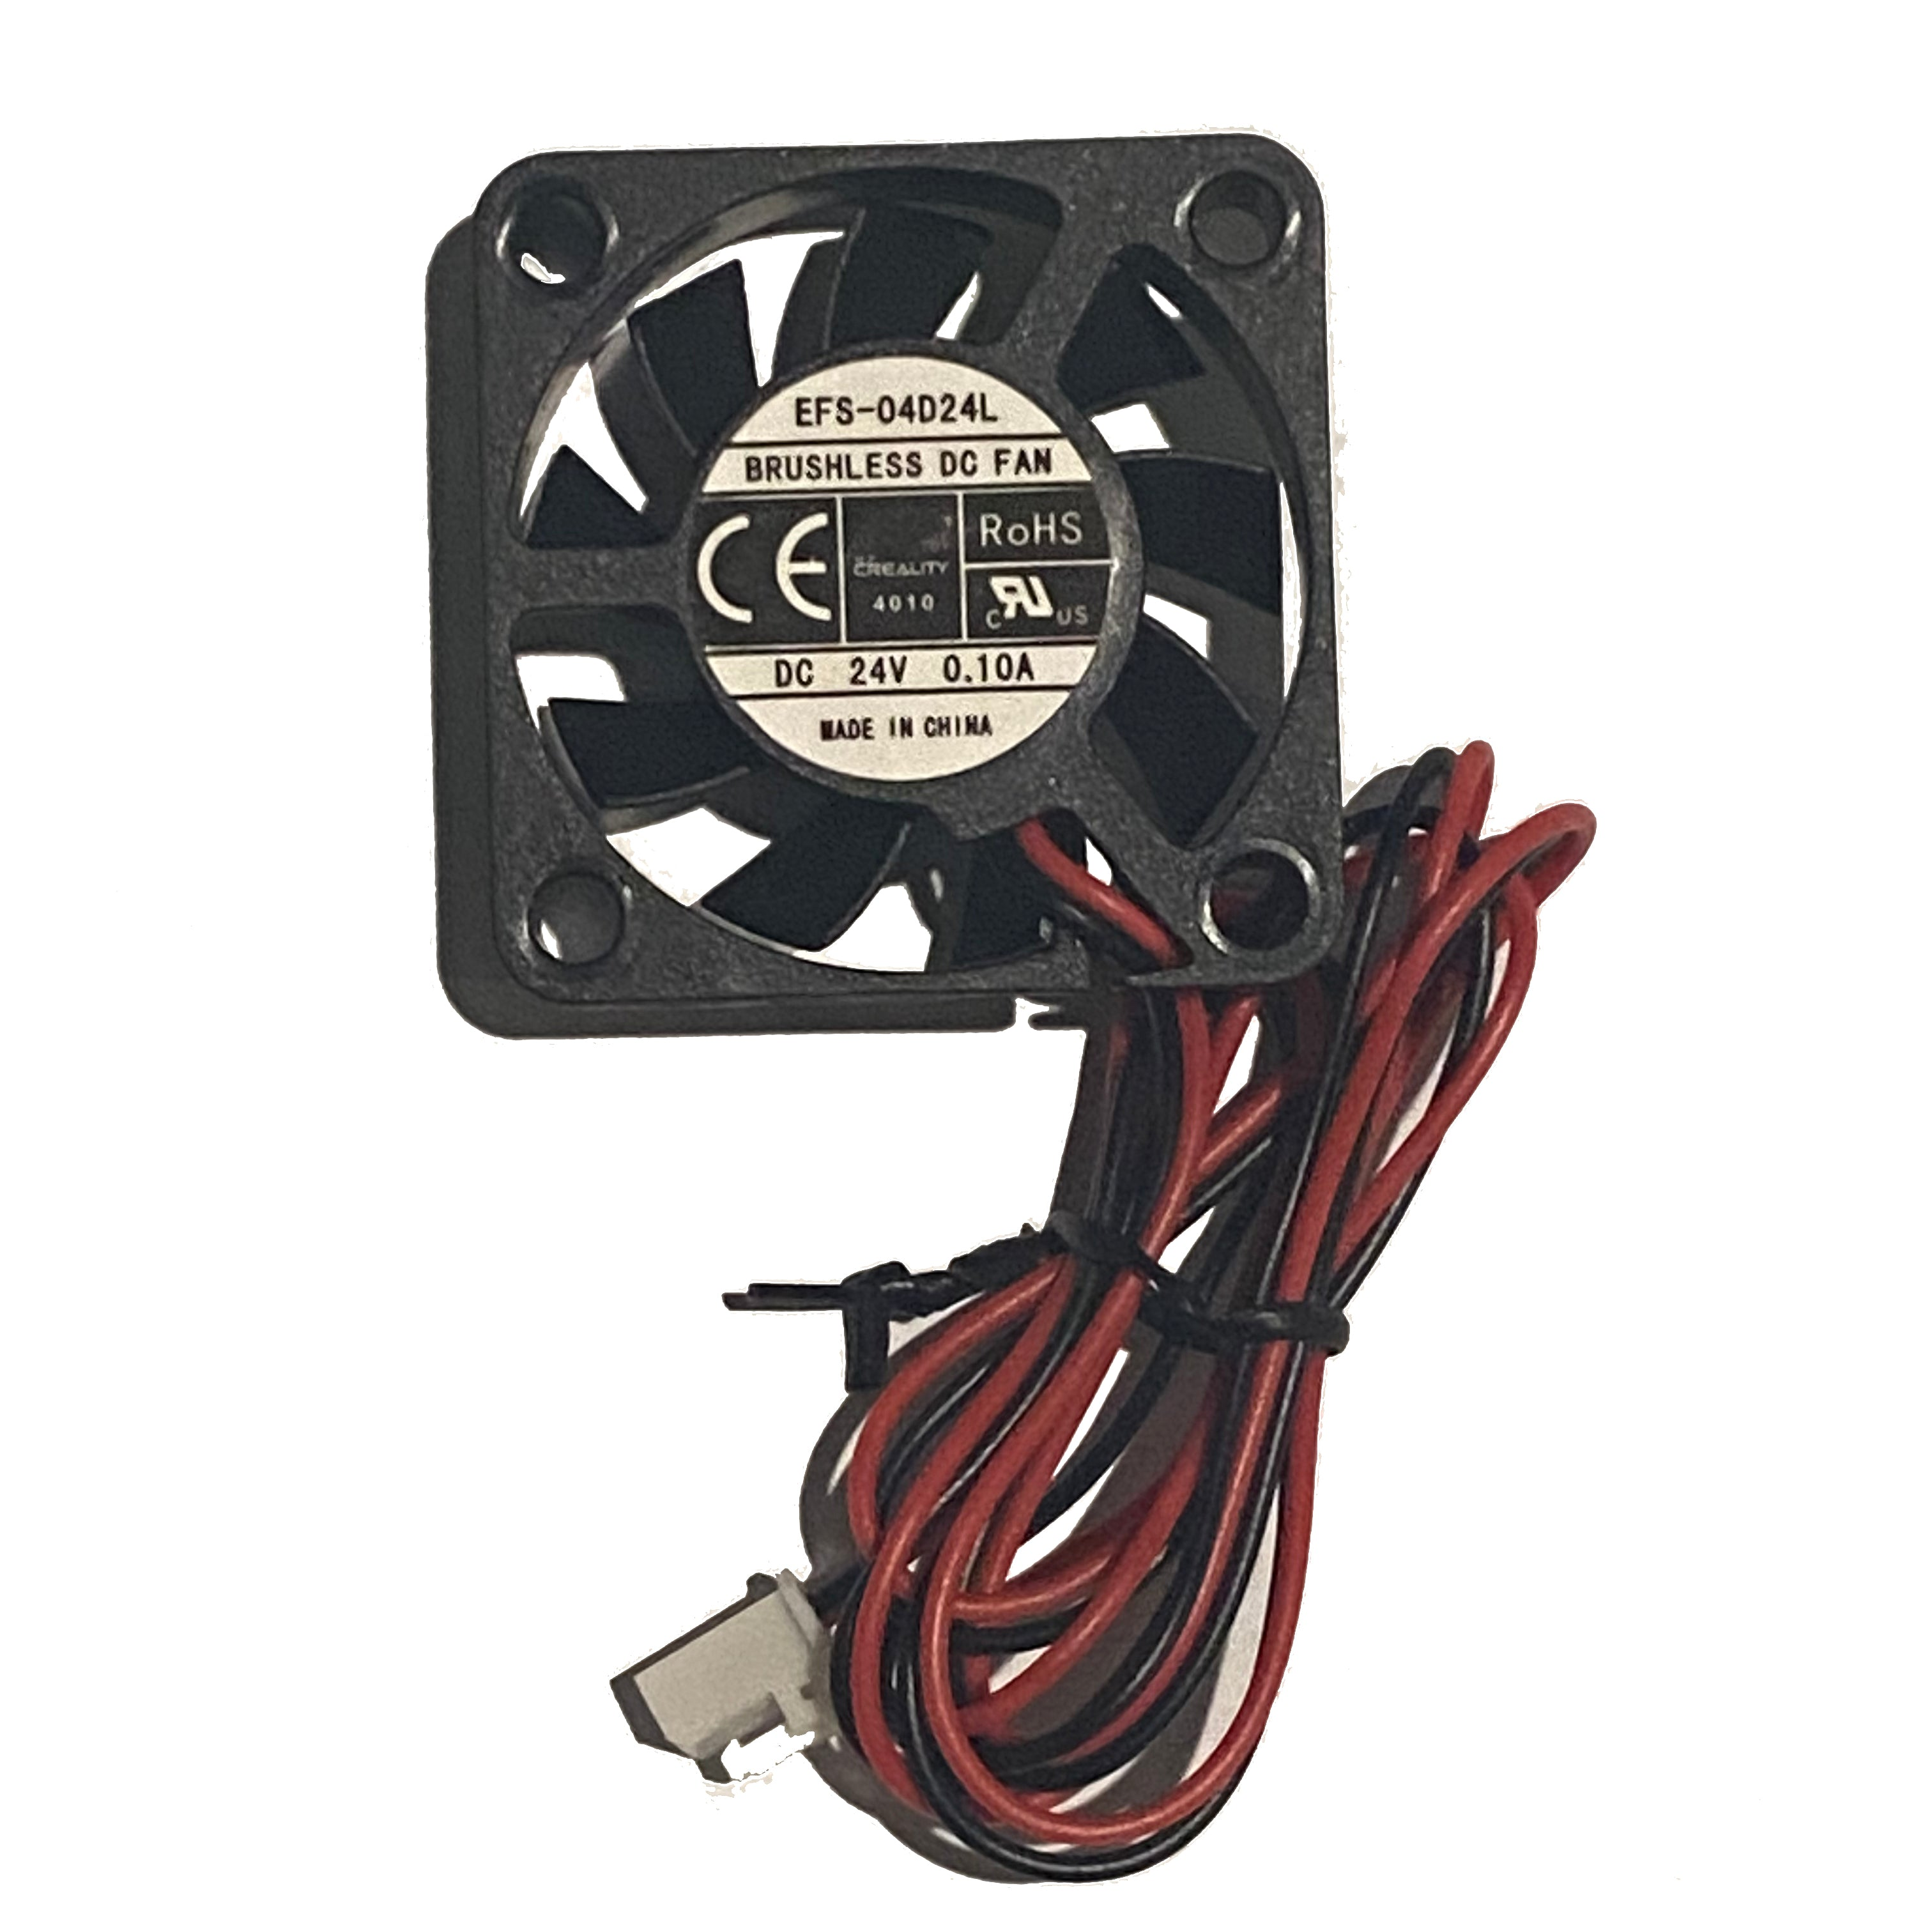 4010 axial fan for Creality Ender-3